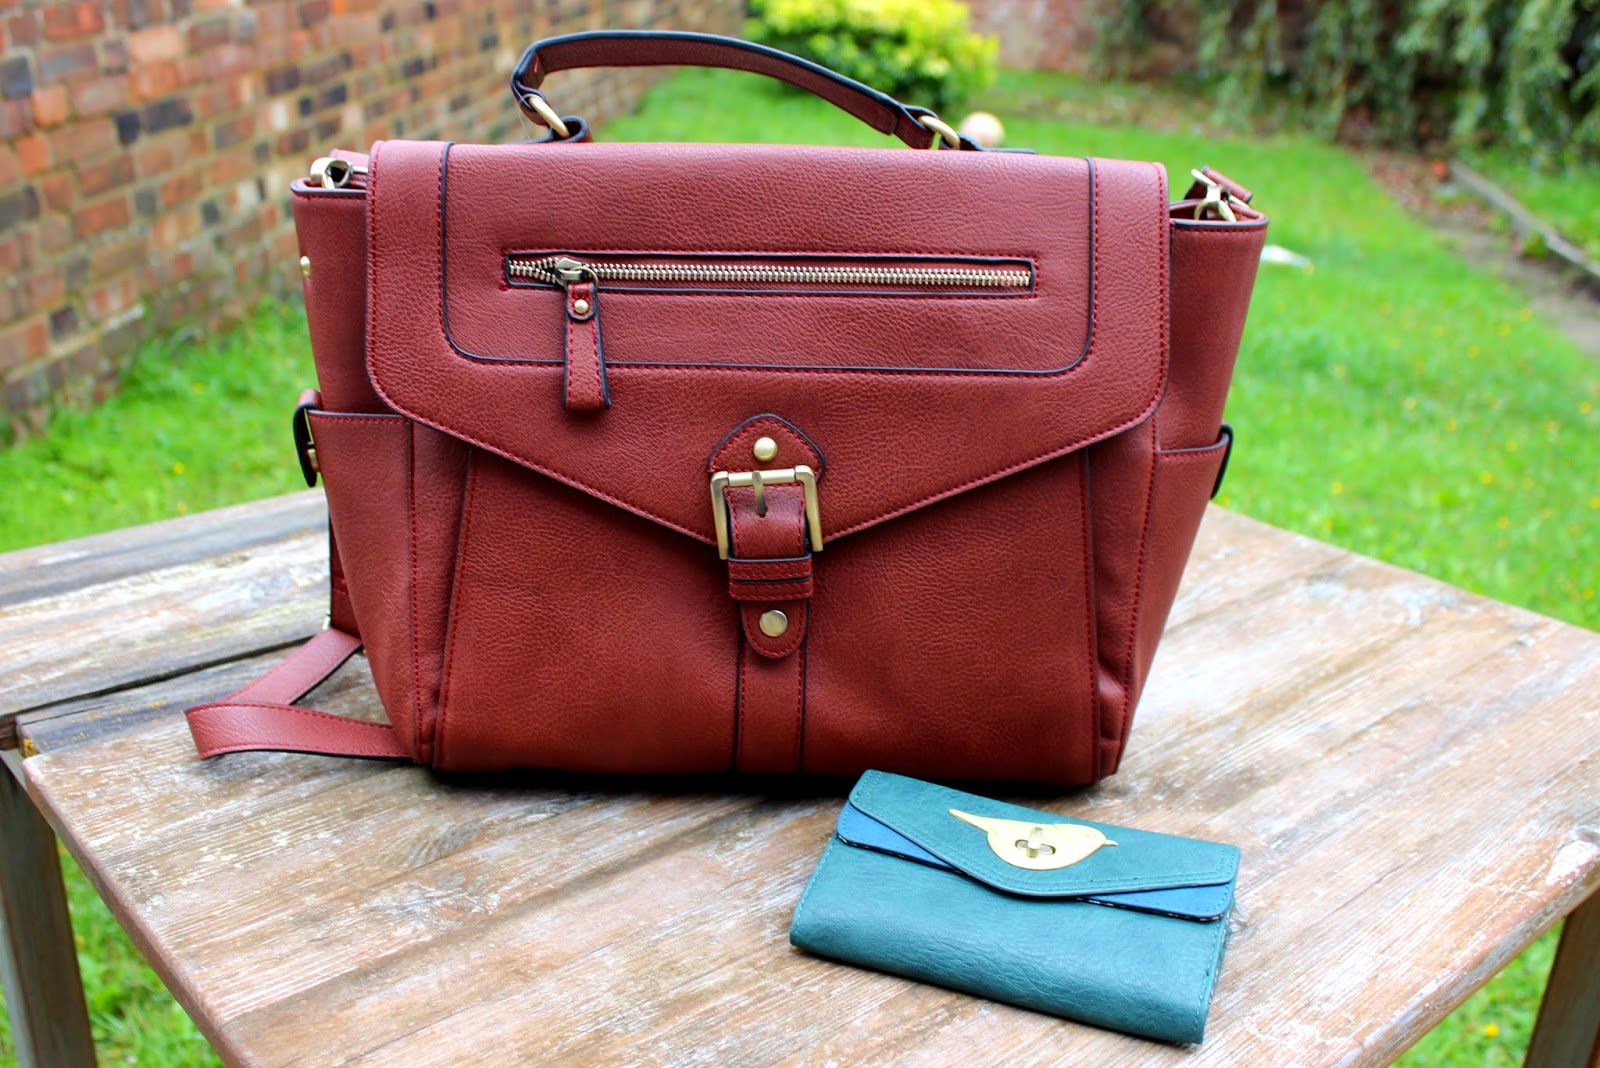 UK Lifestyle, Fashion & Beauty Blog: Accessorize - The Willesden Satchel & Chester Chubby Bird Wallet review